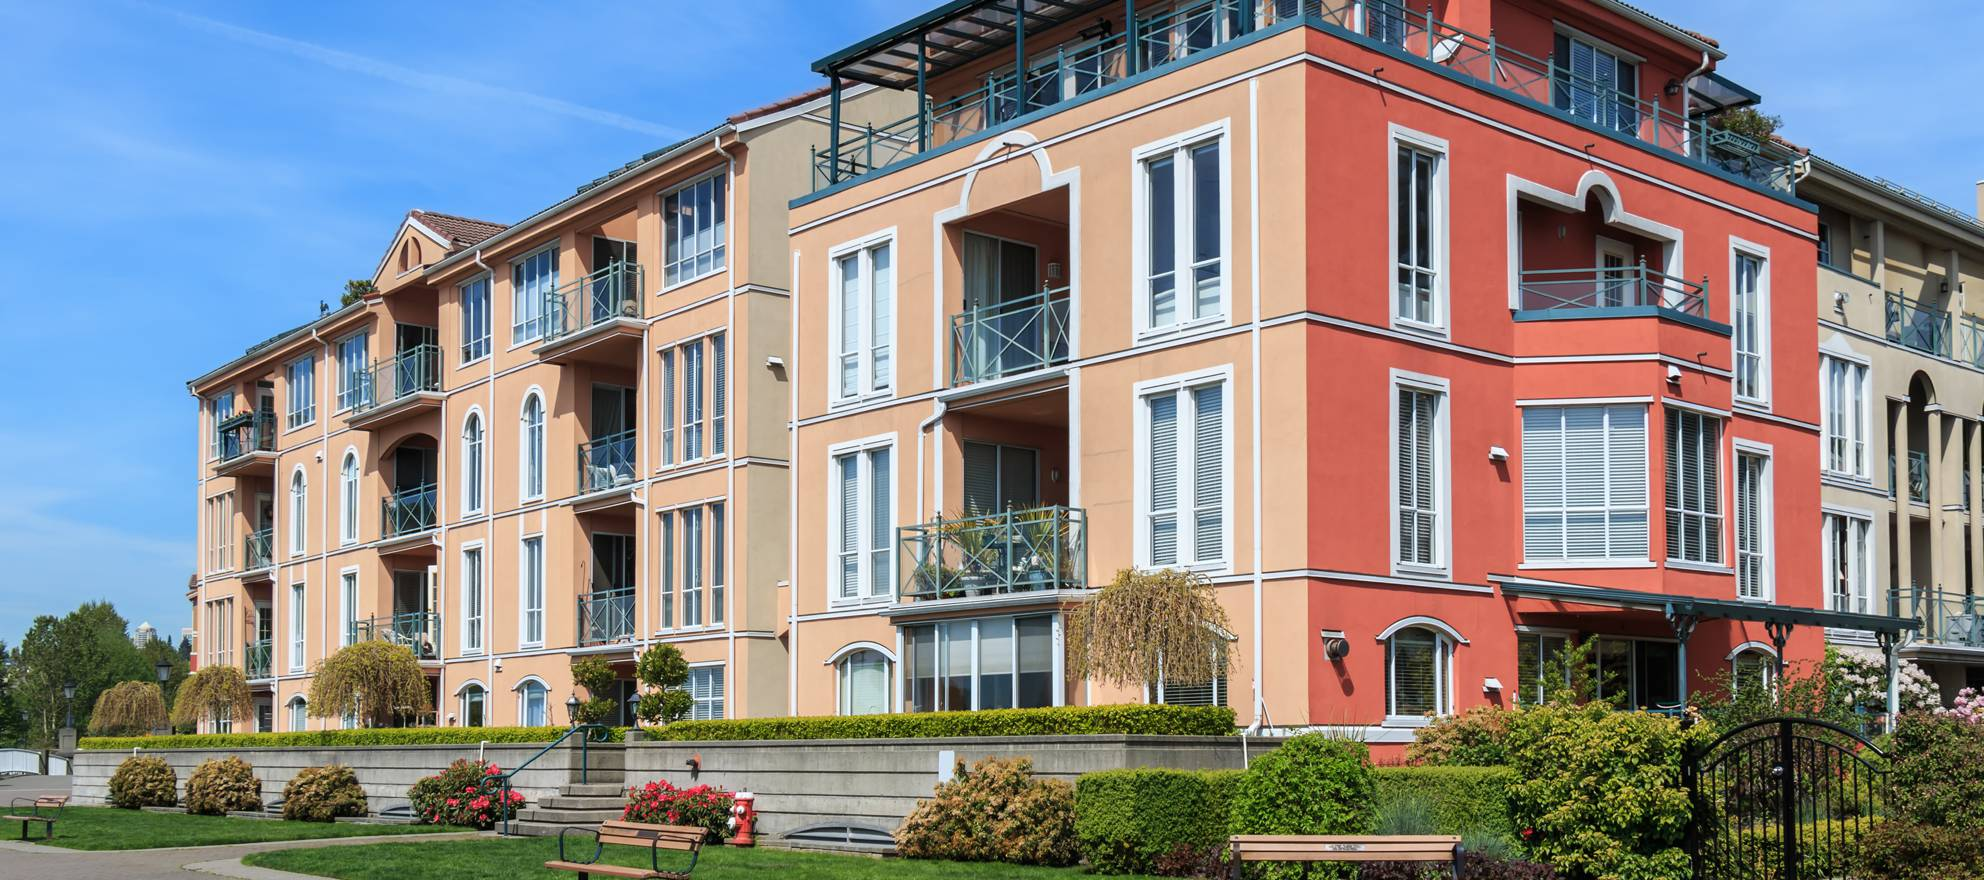 FHA changes to condo policies aim to boost homeownership